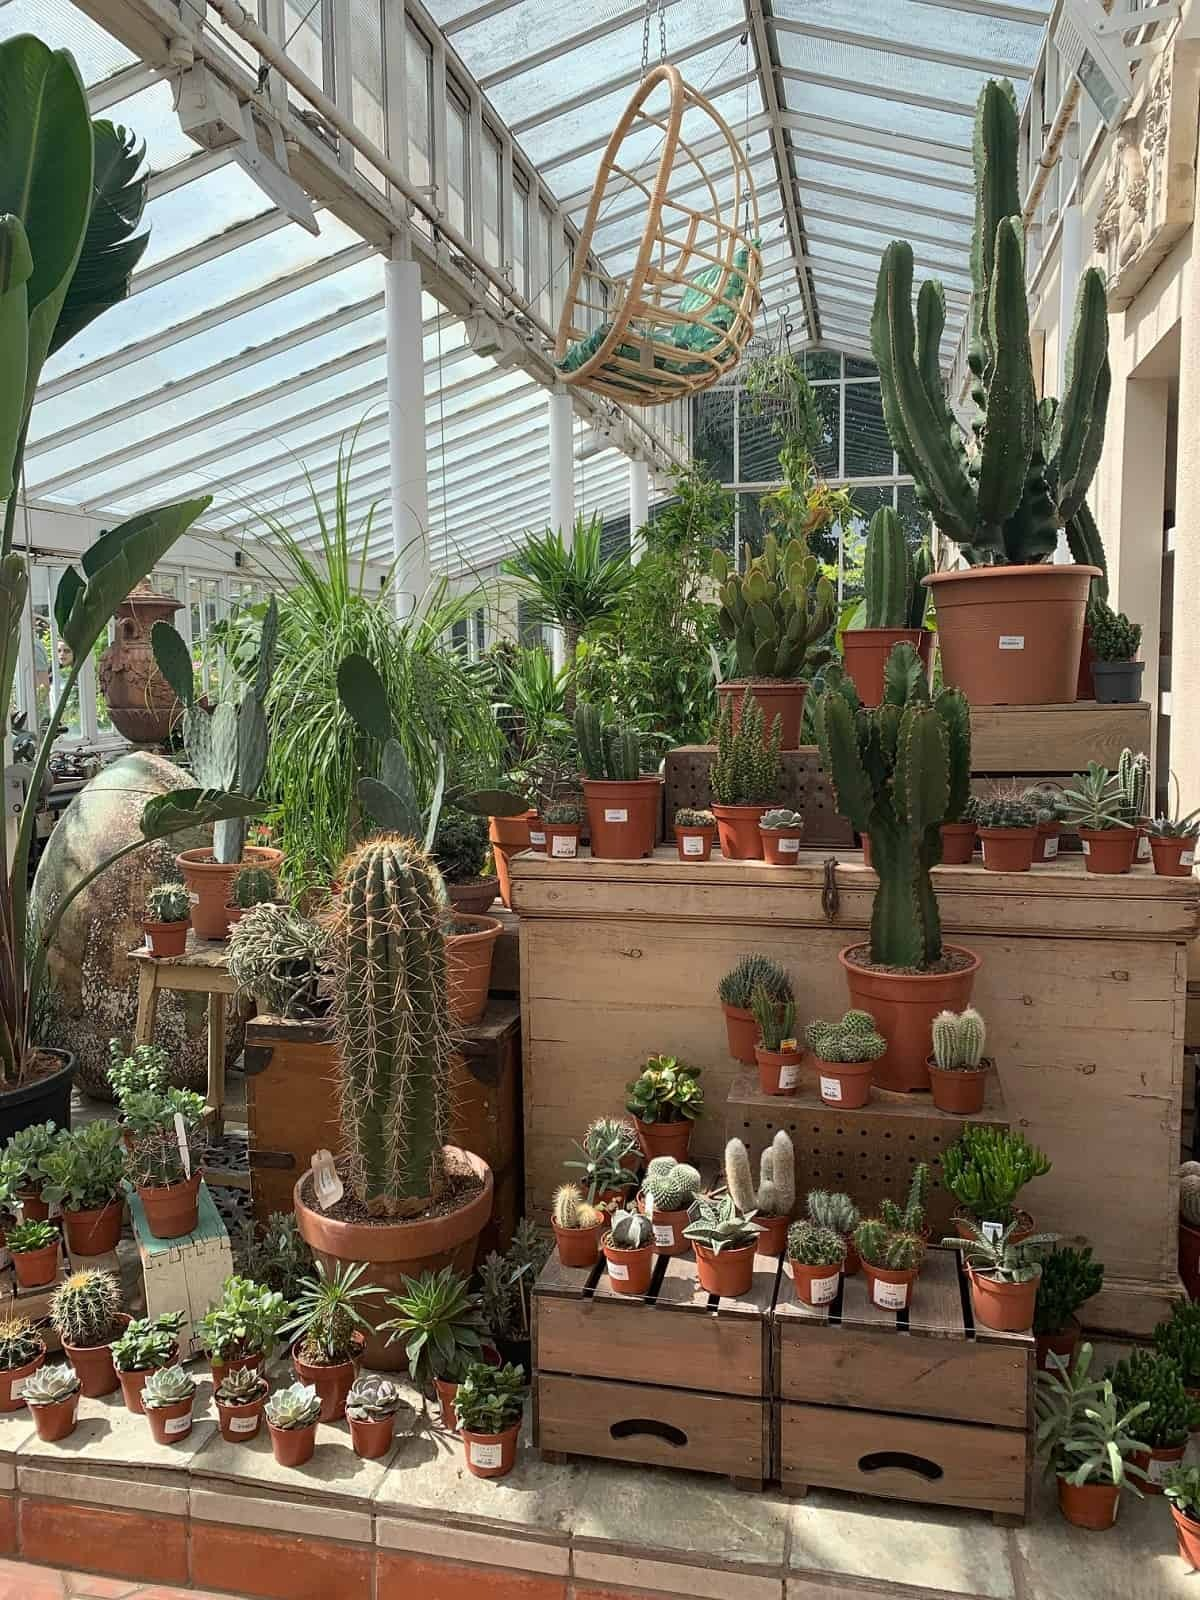 Cacti and succulents at Clifton Nursery